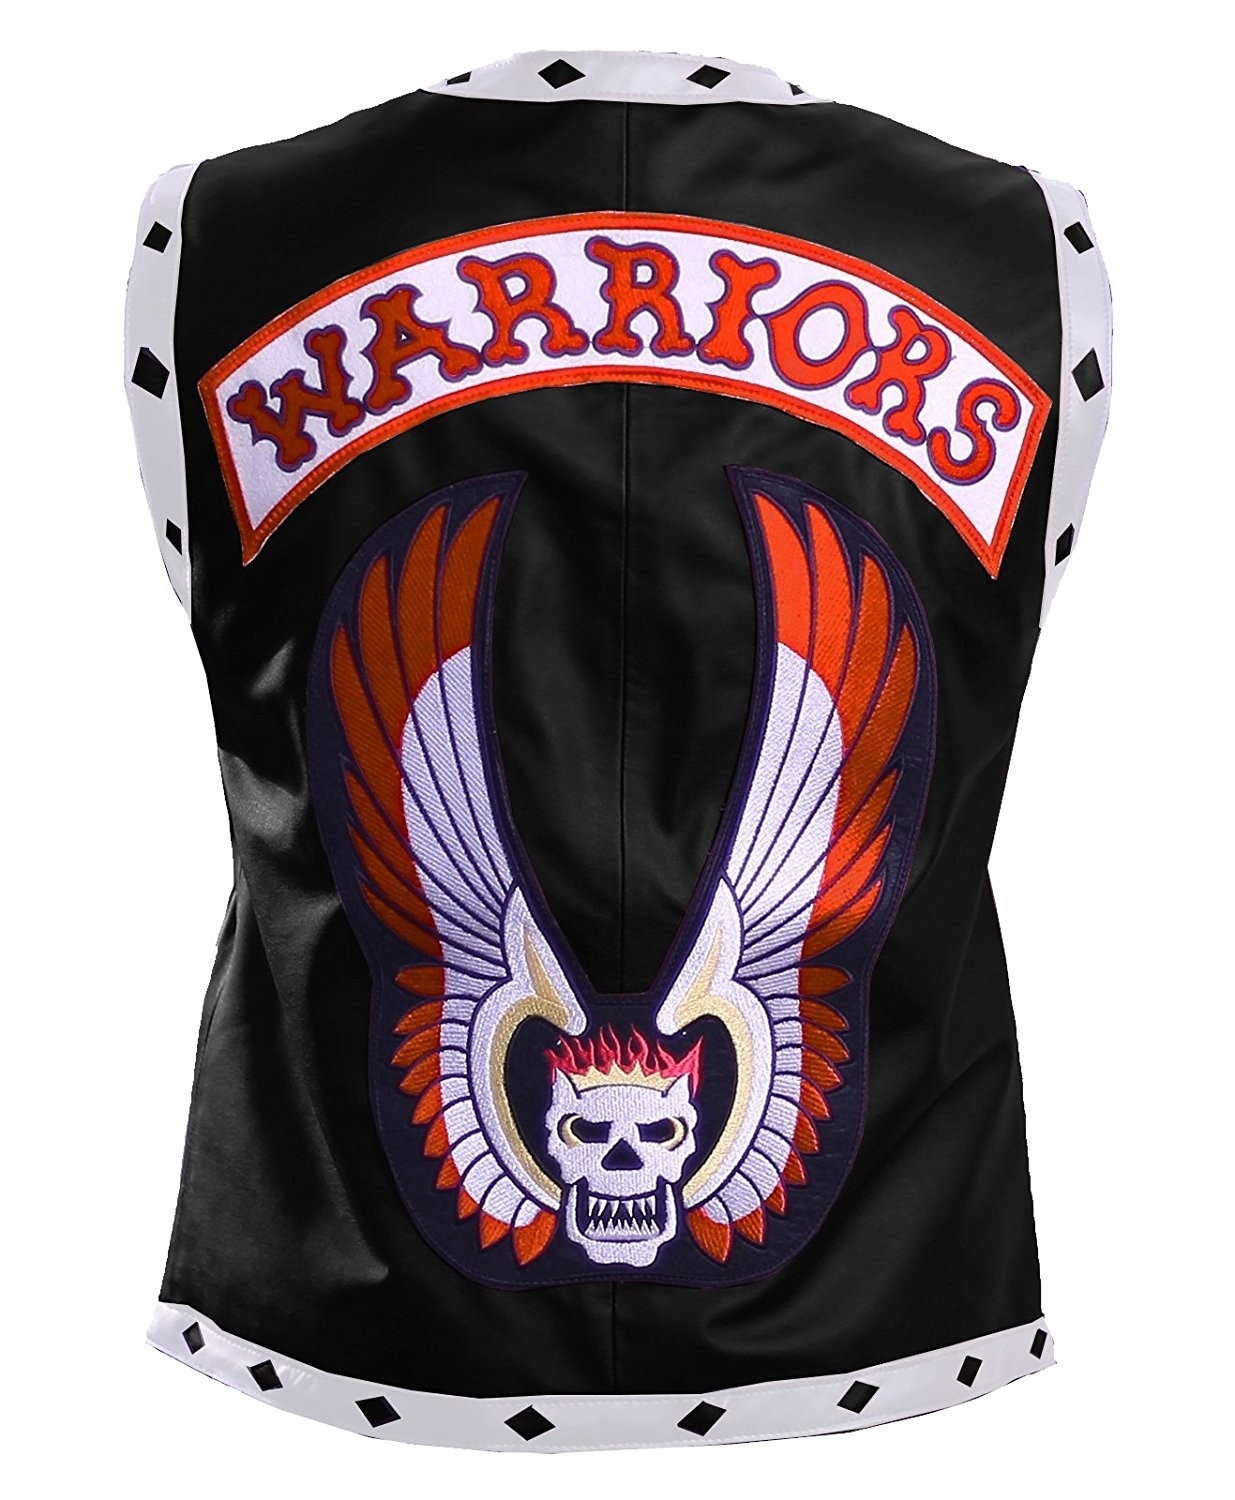 Herts Leather Warrior Mens Style Real Leather HQ Vest In Black With White Striped Pattern